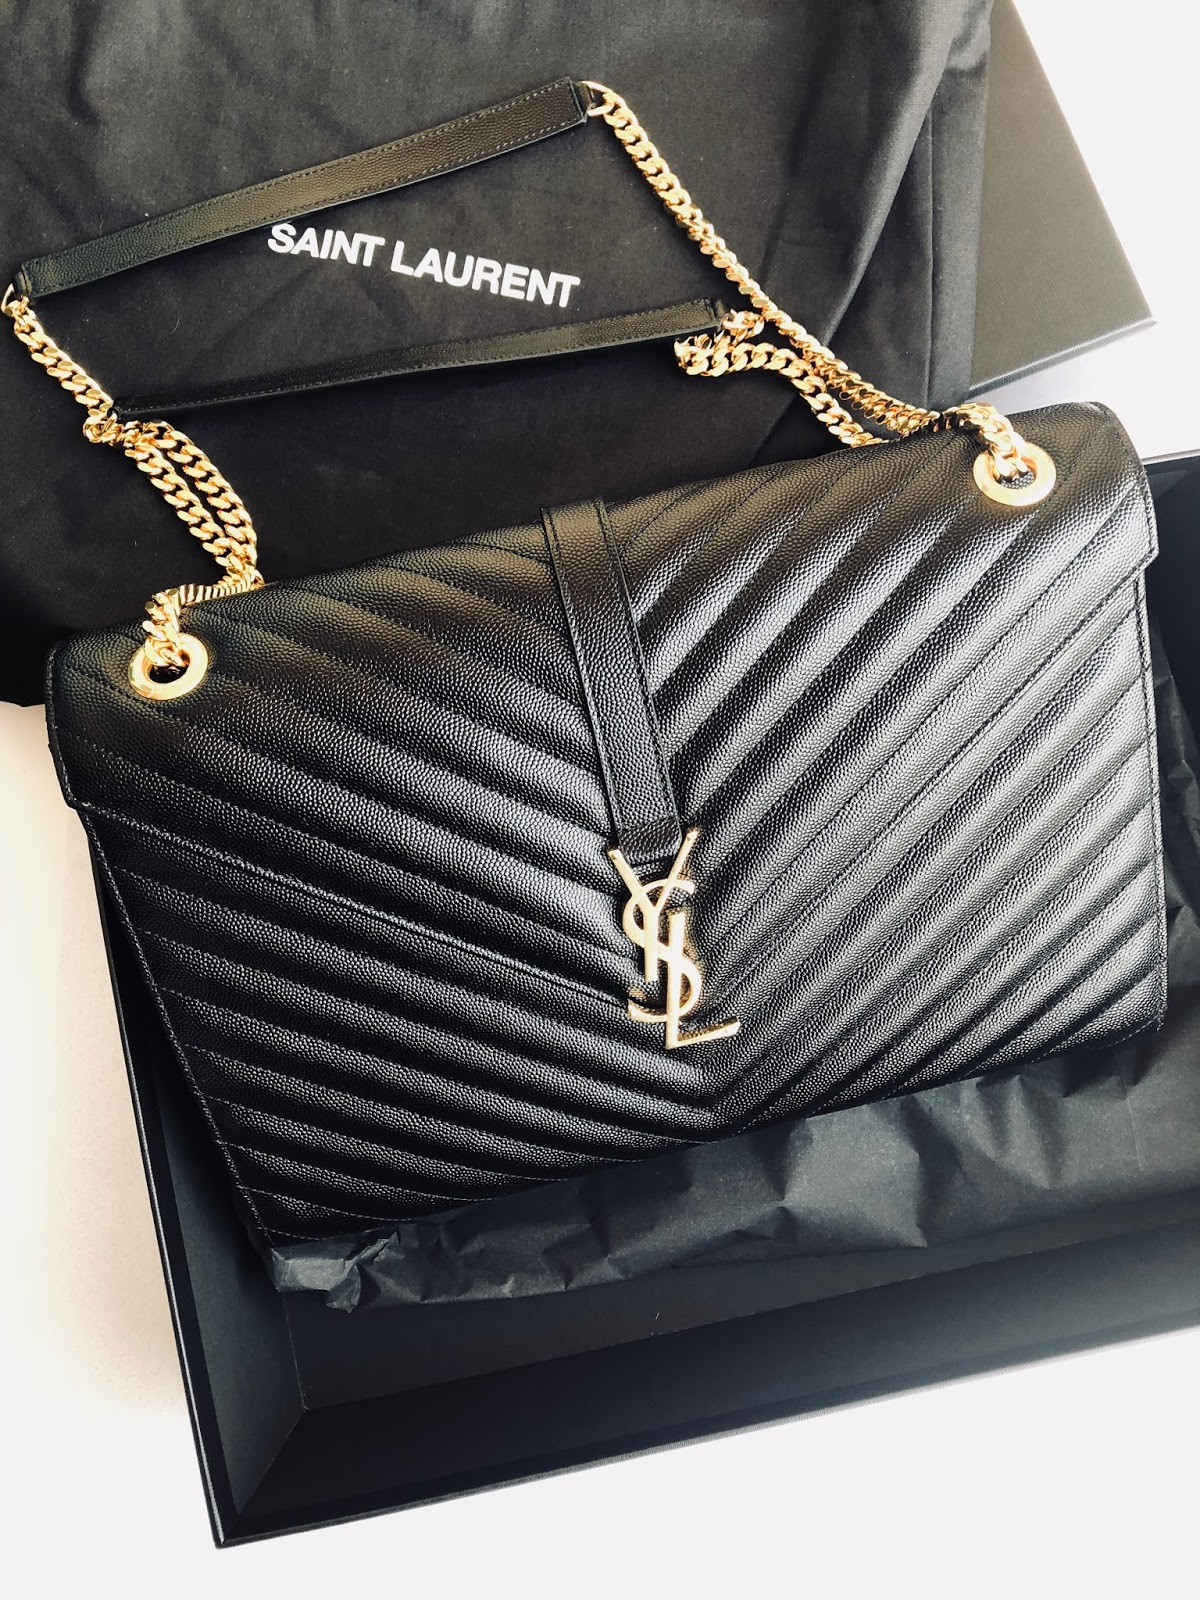 www.ourdubailife.com - Unboxing Day : What I Got For XMAS 2017 YSL handbag